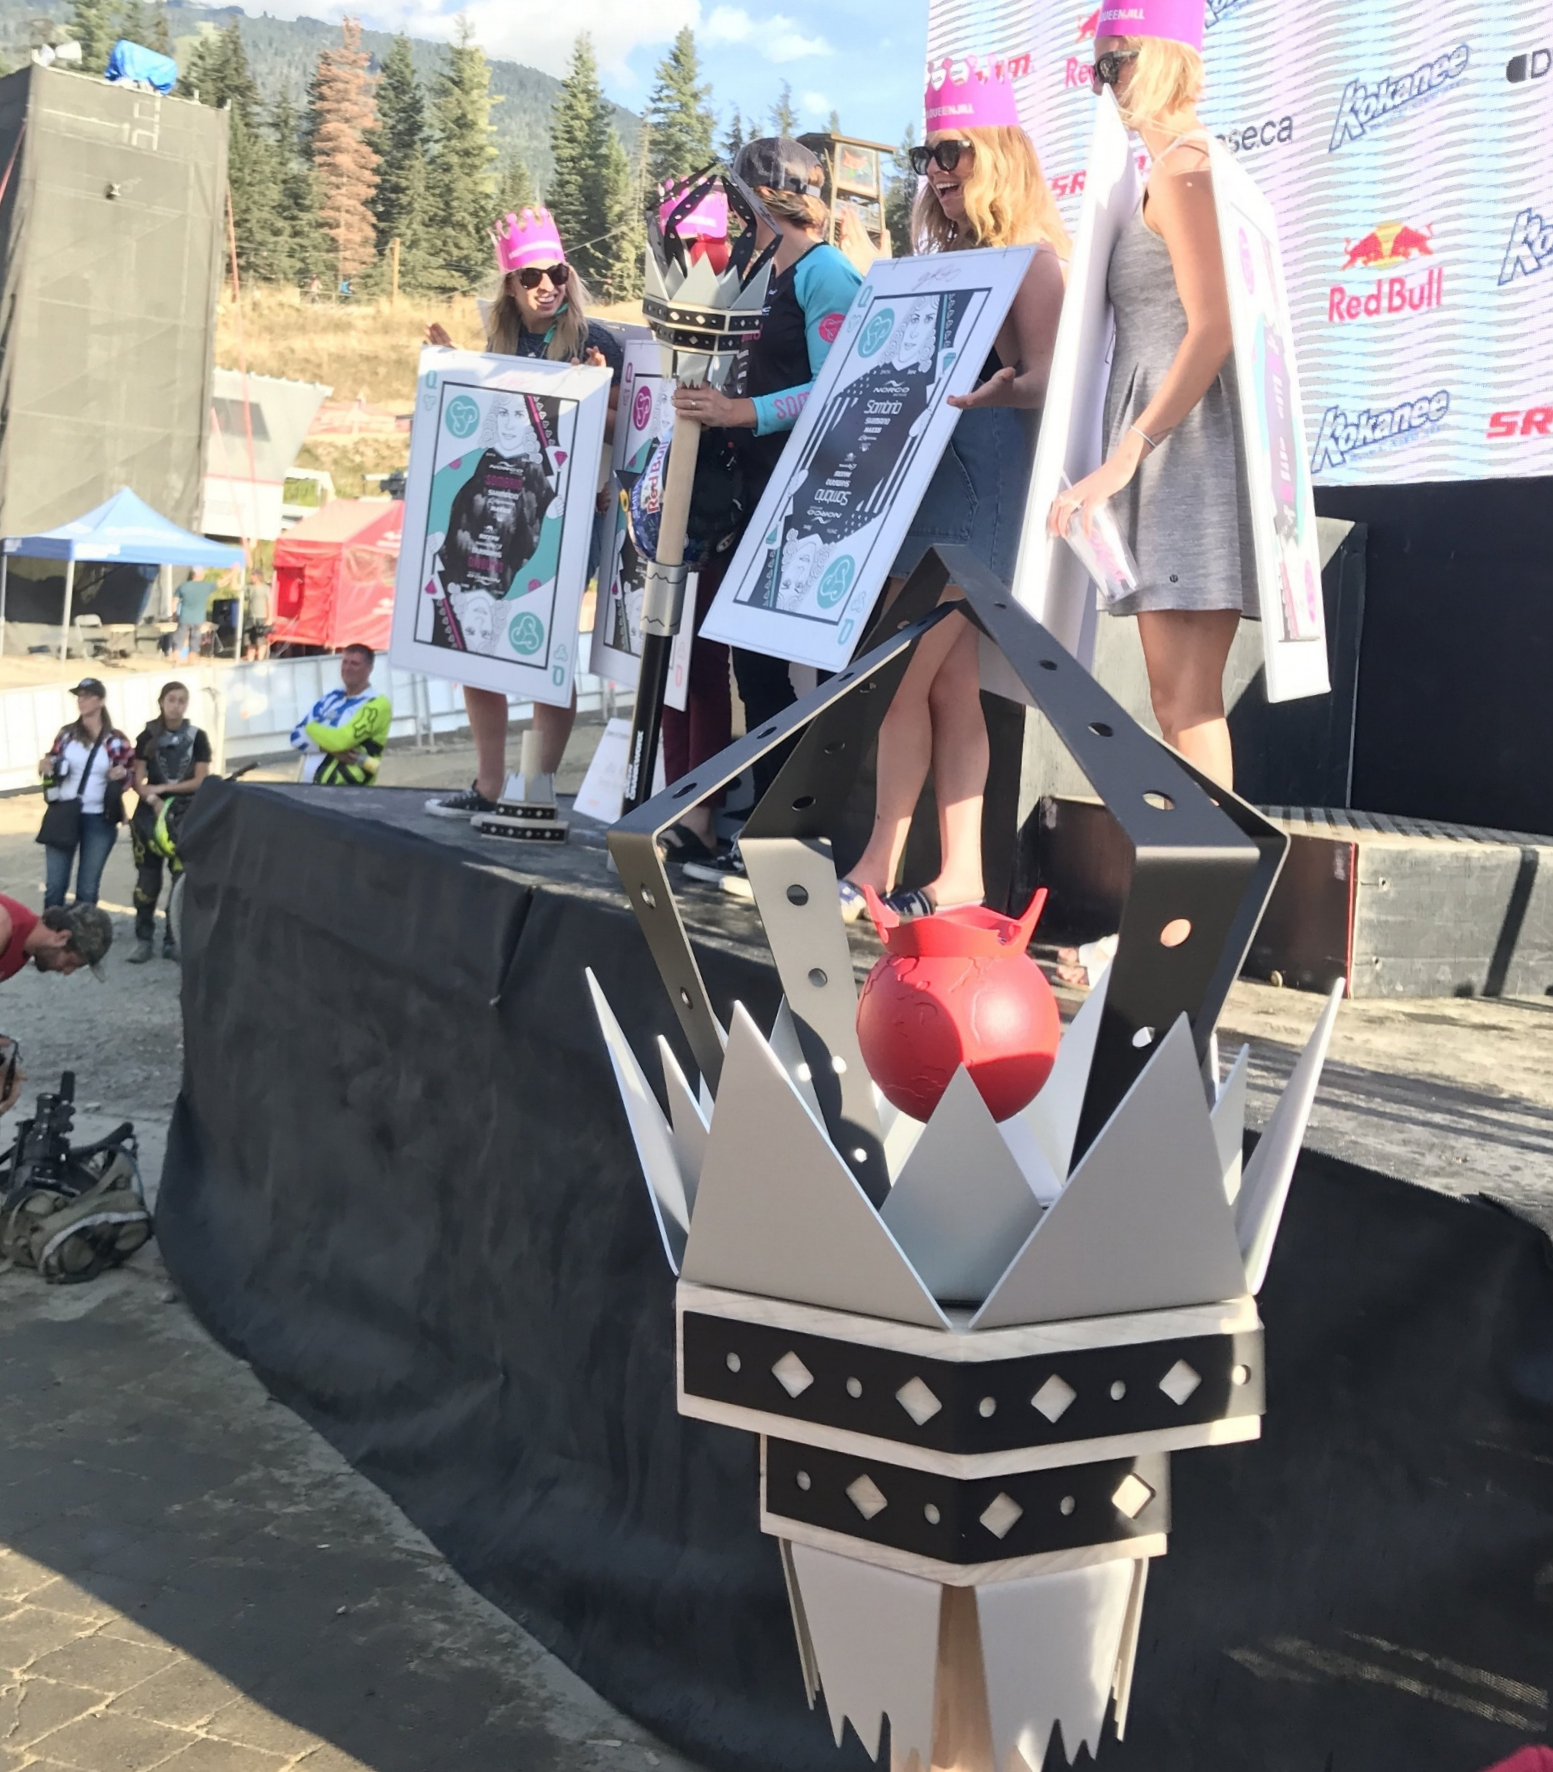 crankworx whistler custom sceptre winner trophy downhill mountain biking festival